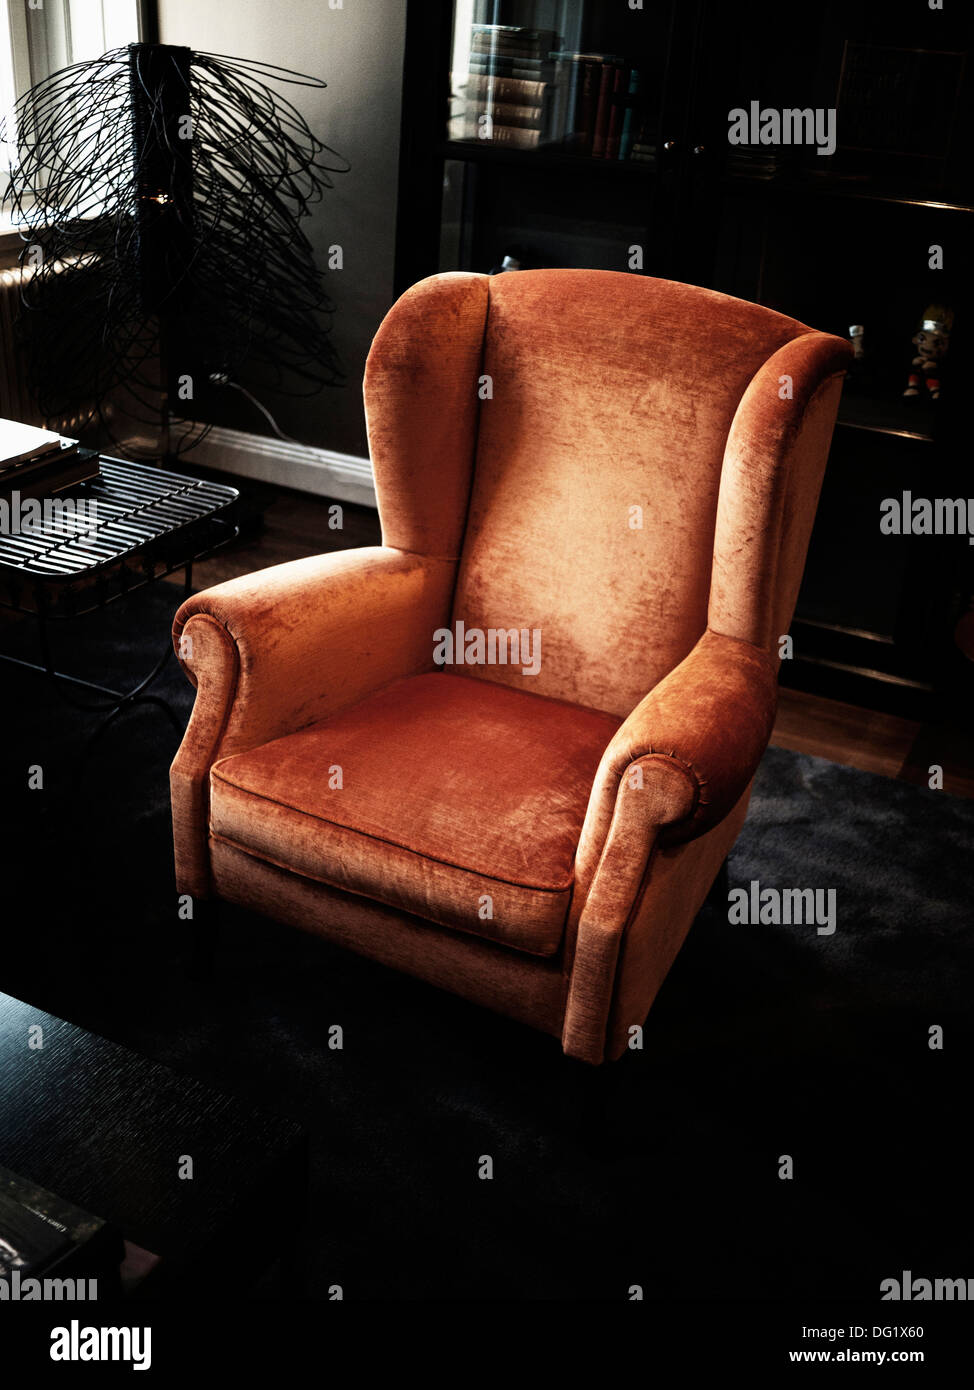 Upholstered Wing Chair in Living Room - Stock Image